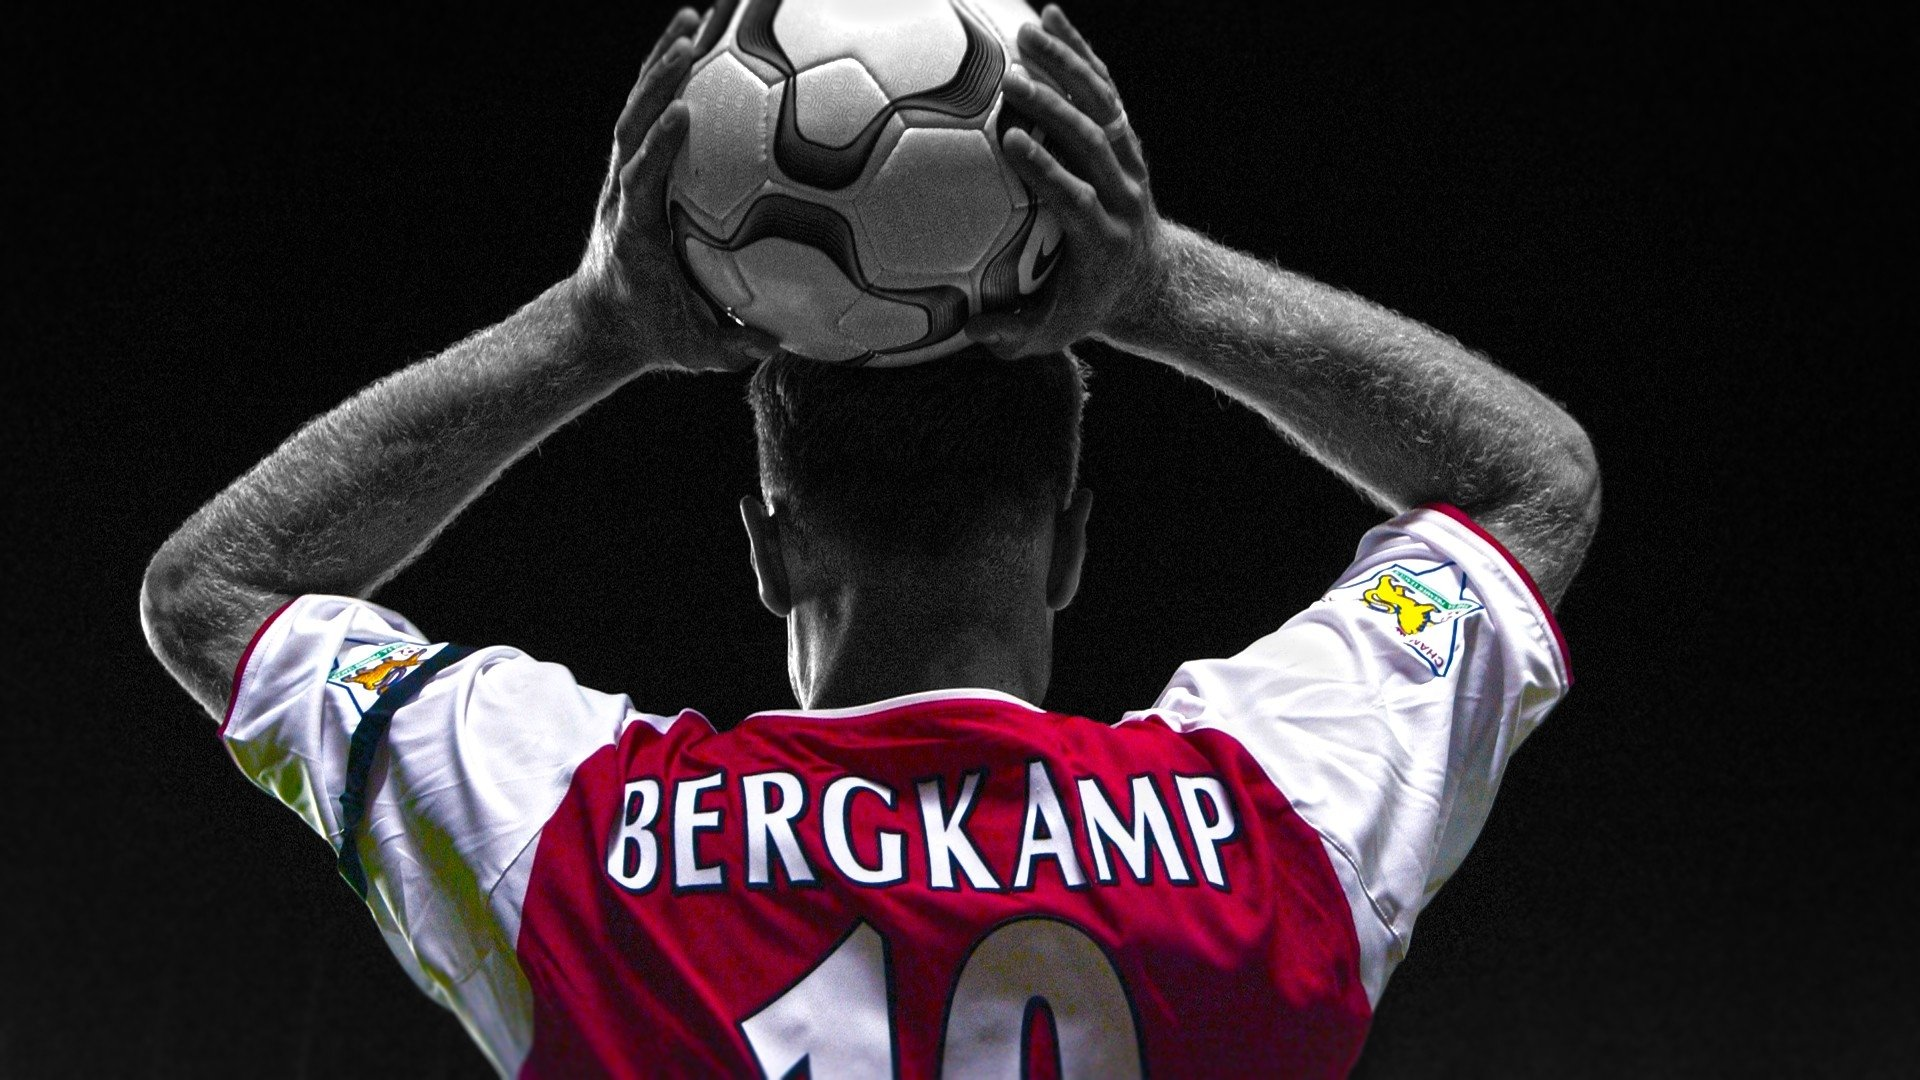 Sports - Dennis Bergkamp   Soccer Wallpaper